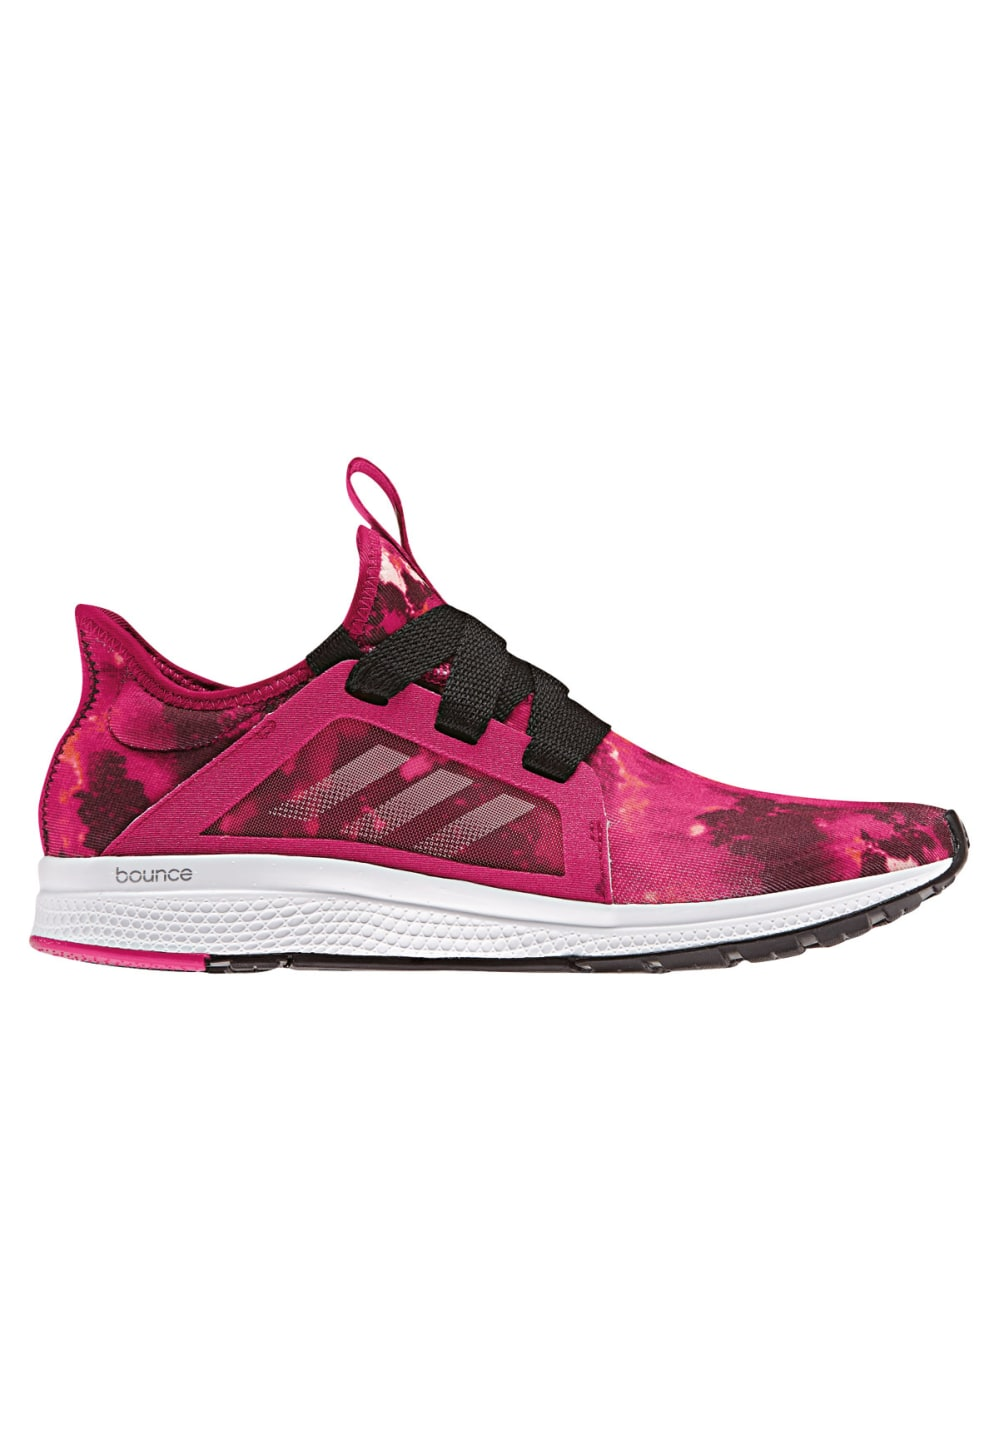 promo code e9b29 9ac36 adidas Edge Lux - Running shoes for Women - Pink  21RUN